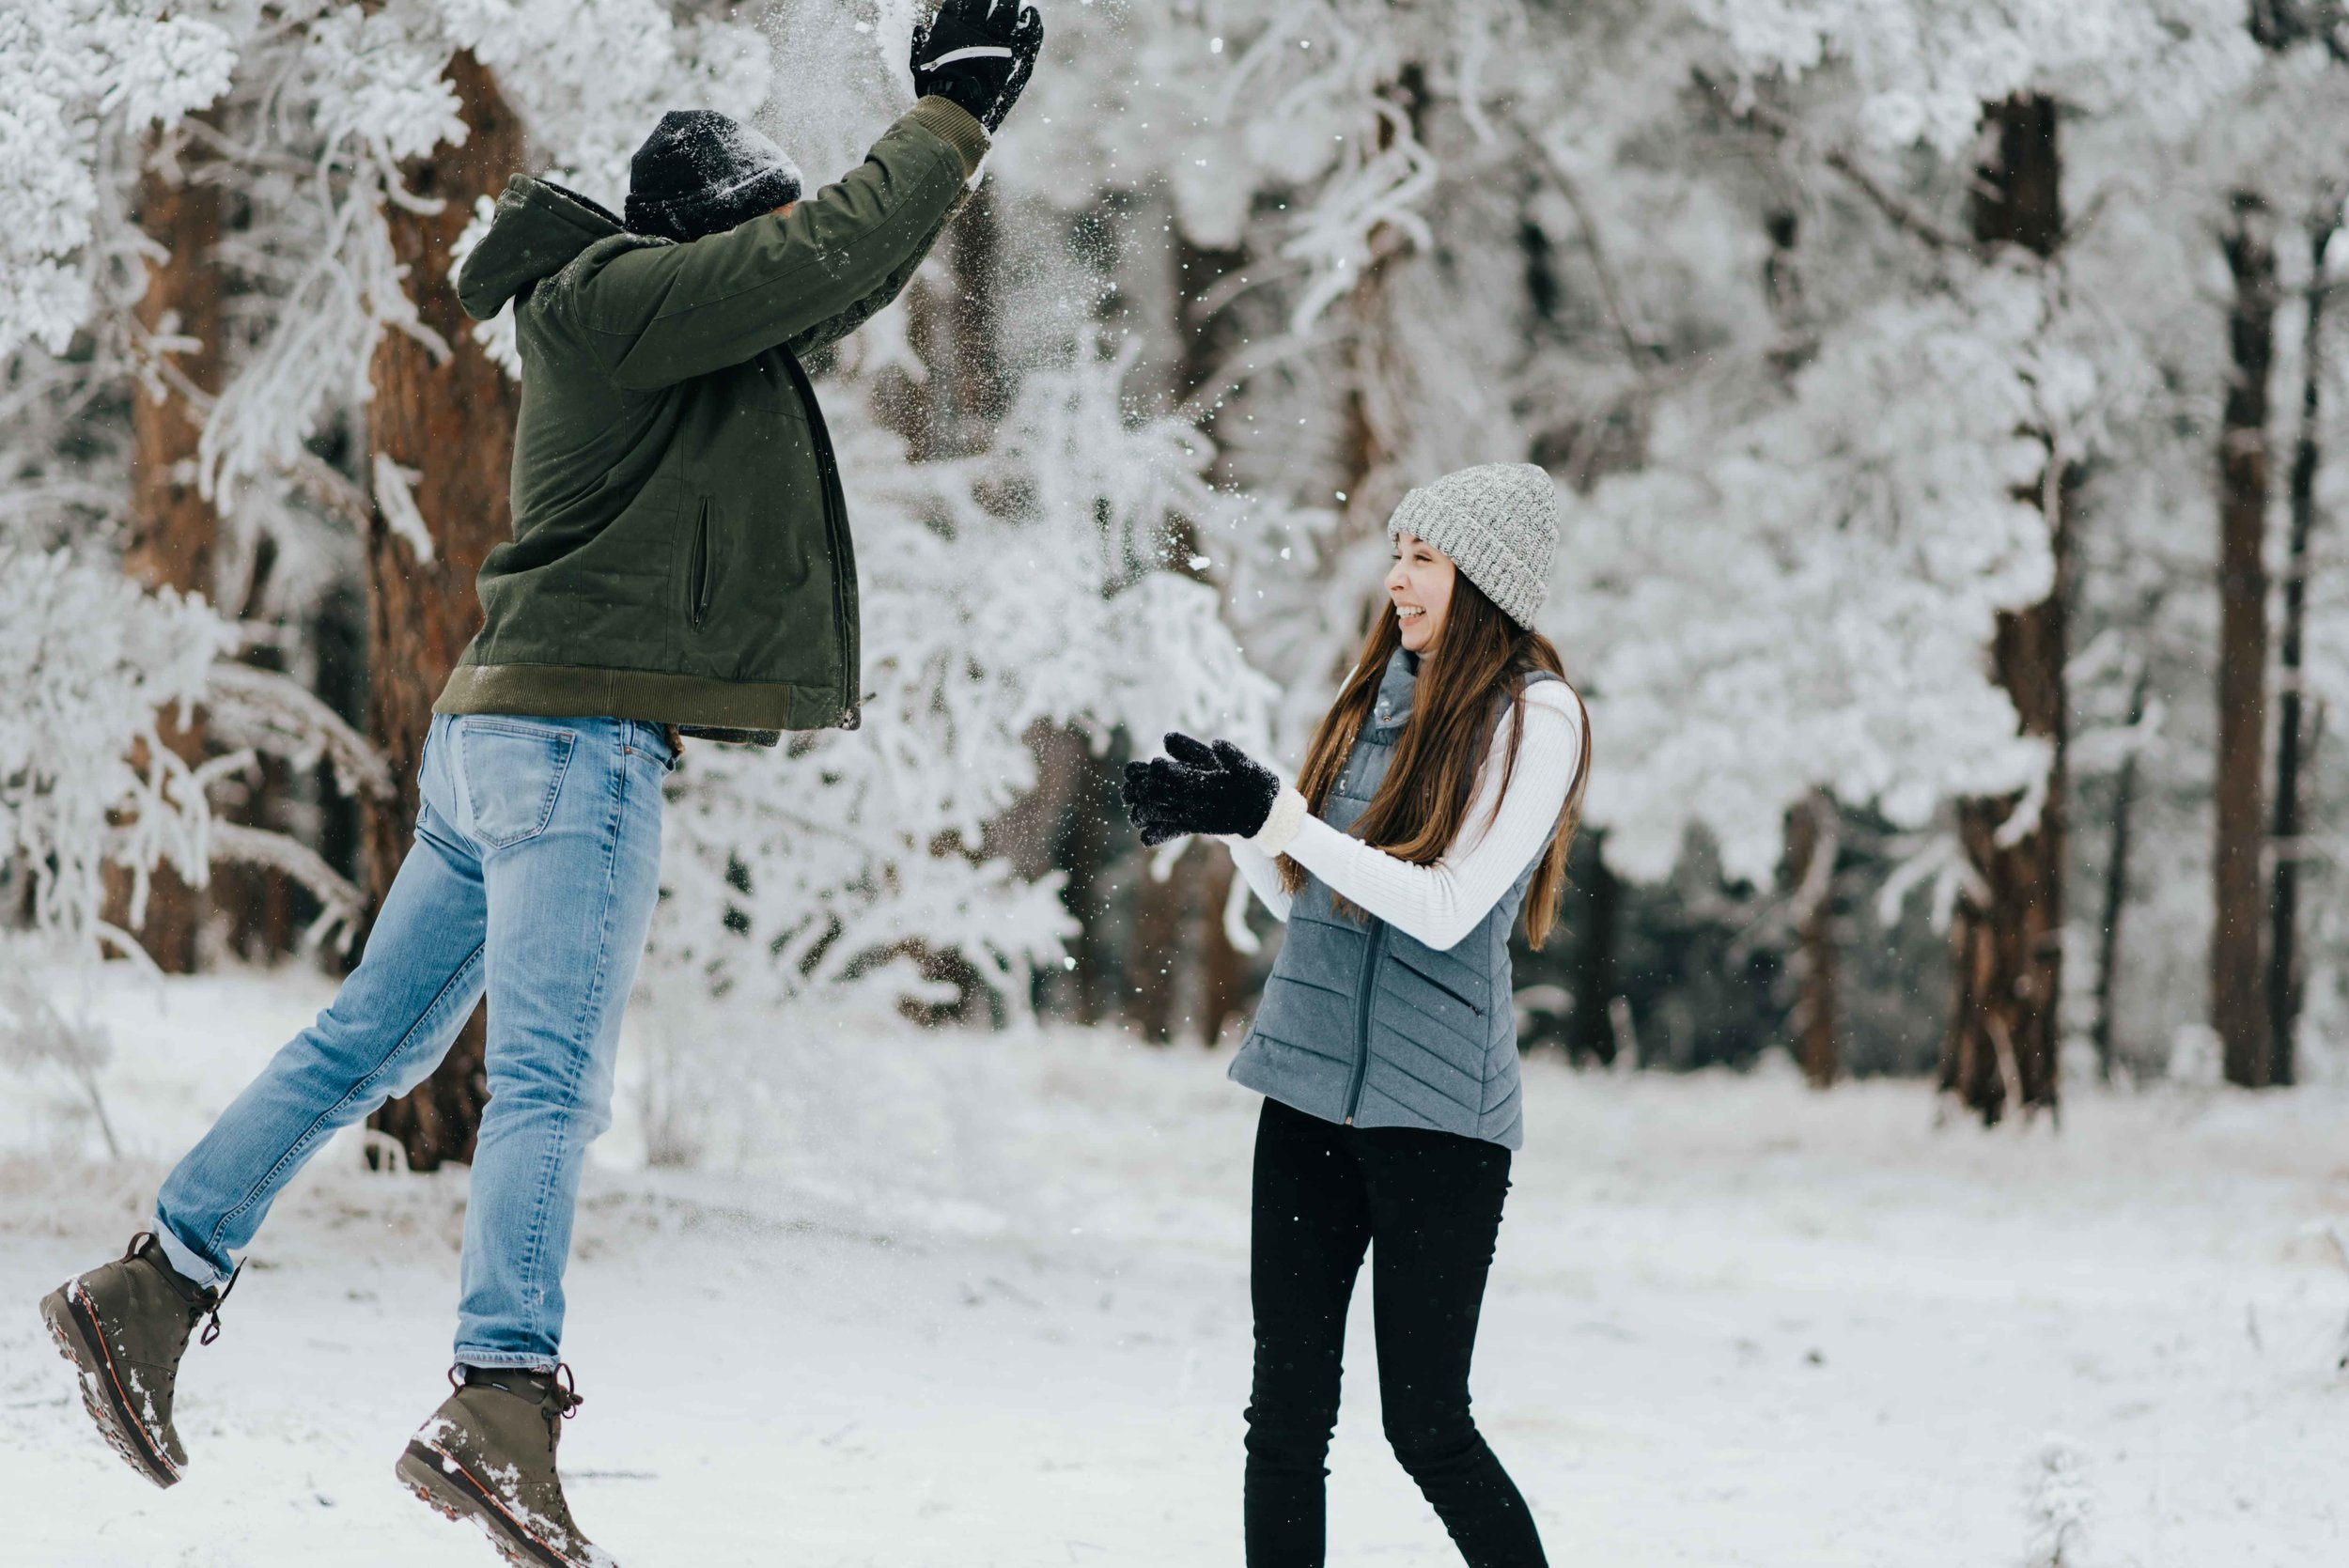 Nik and Tani during their snowy engagement session. Nik got a snowball to the face, so Tani was not going to be shown any mercy!